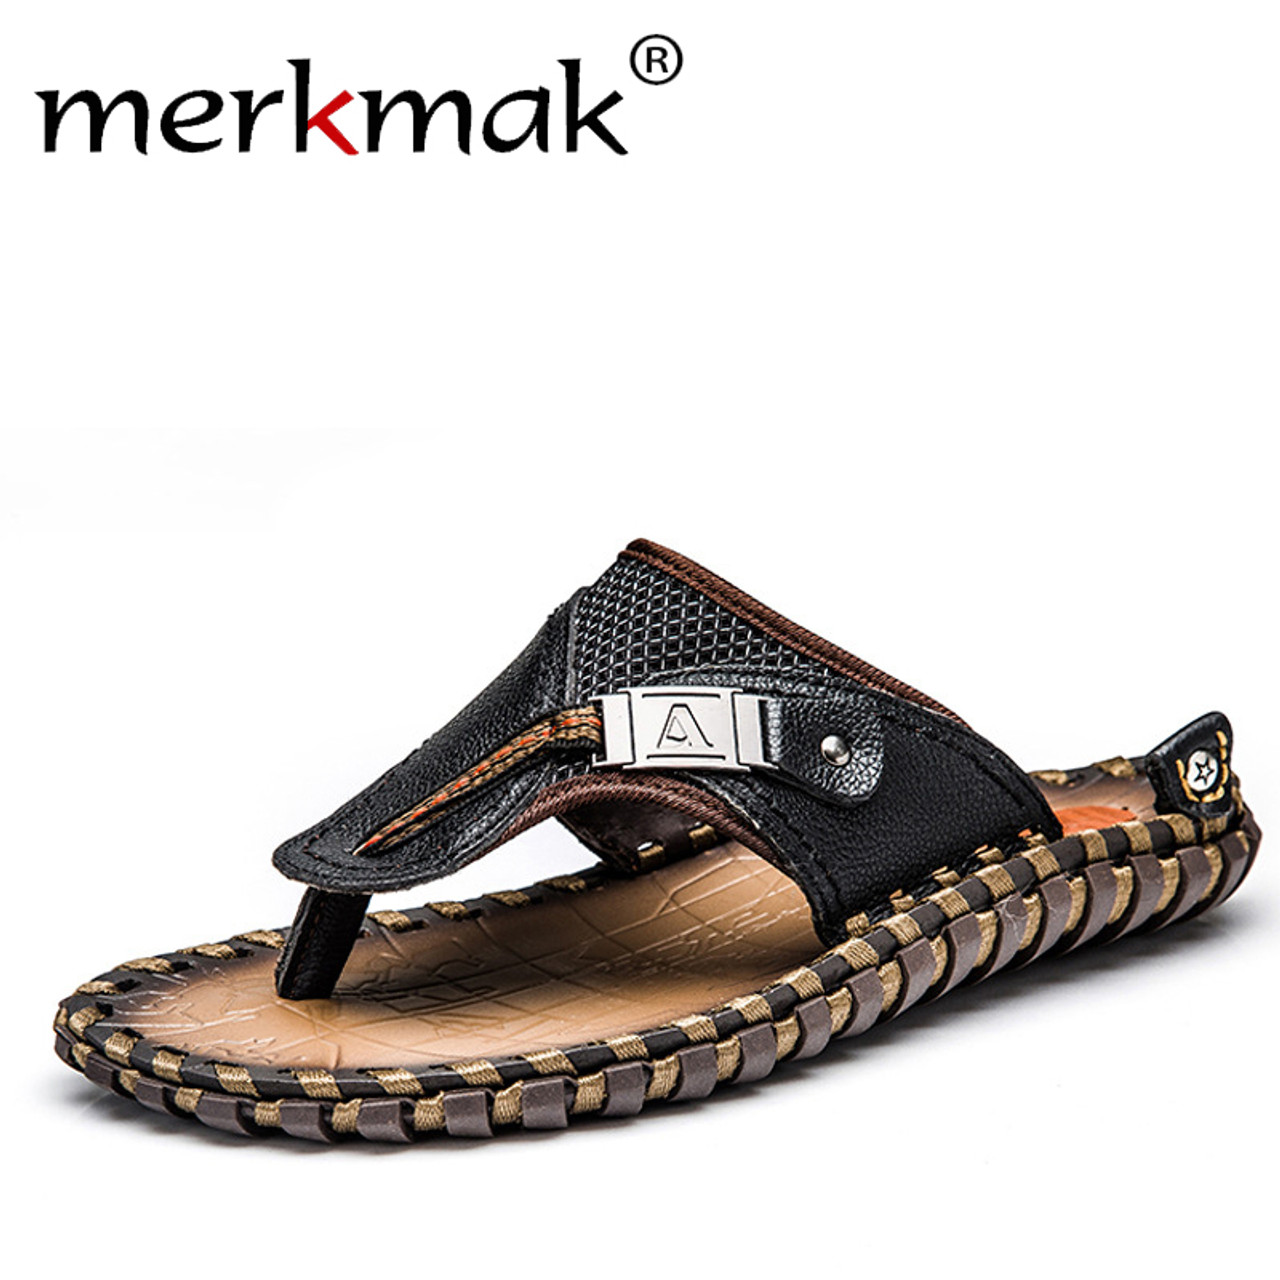 cb9e638d8 Merkmak Luxury Brand 2018 New Men s Flip Flops Genuine Leather Slippers  Summer Fashion Beach Sandals Shoes For Men Big Size 45 - OnshopDeals.Com